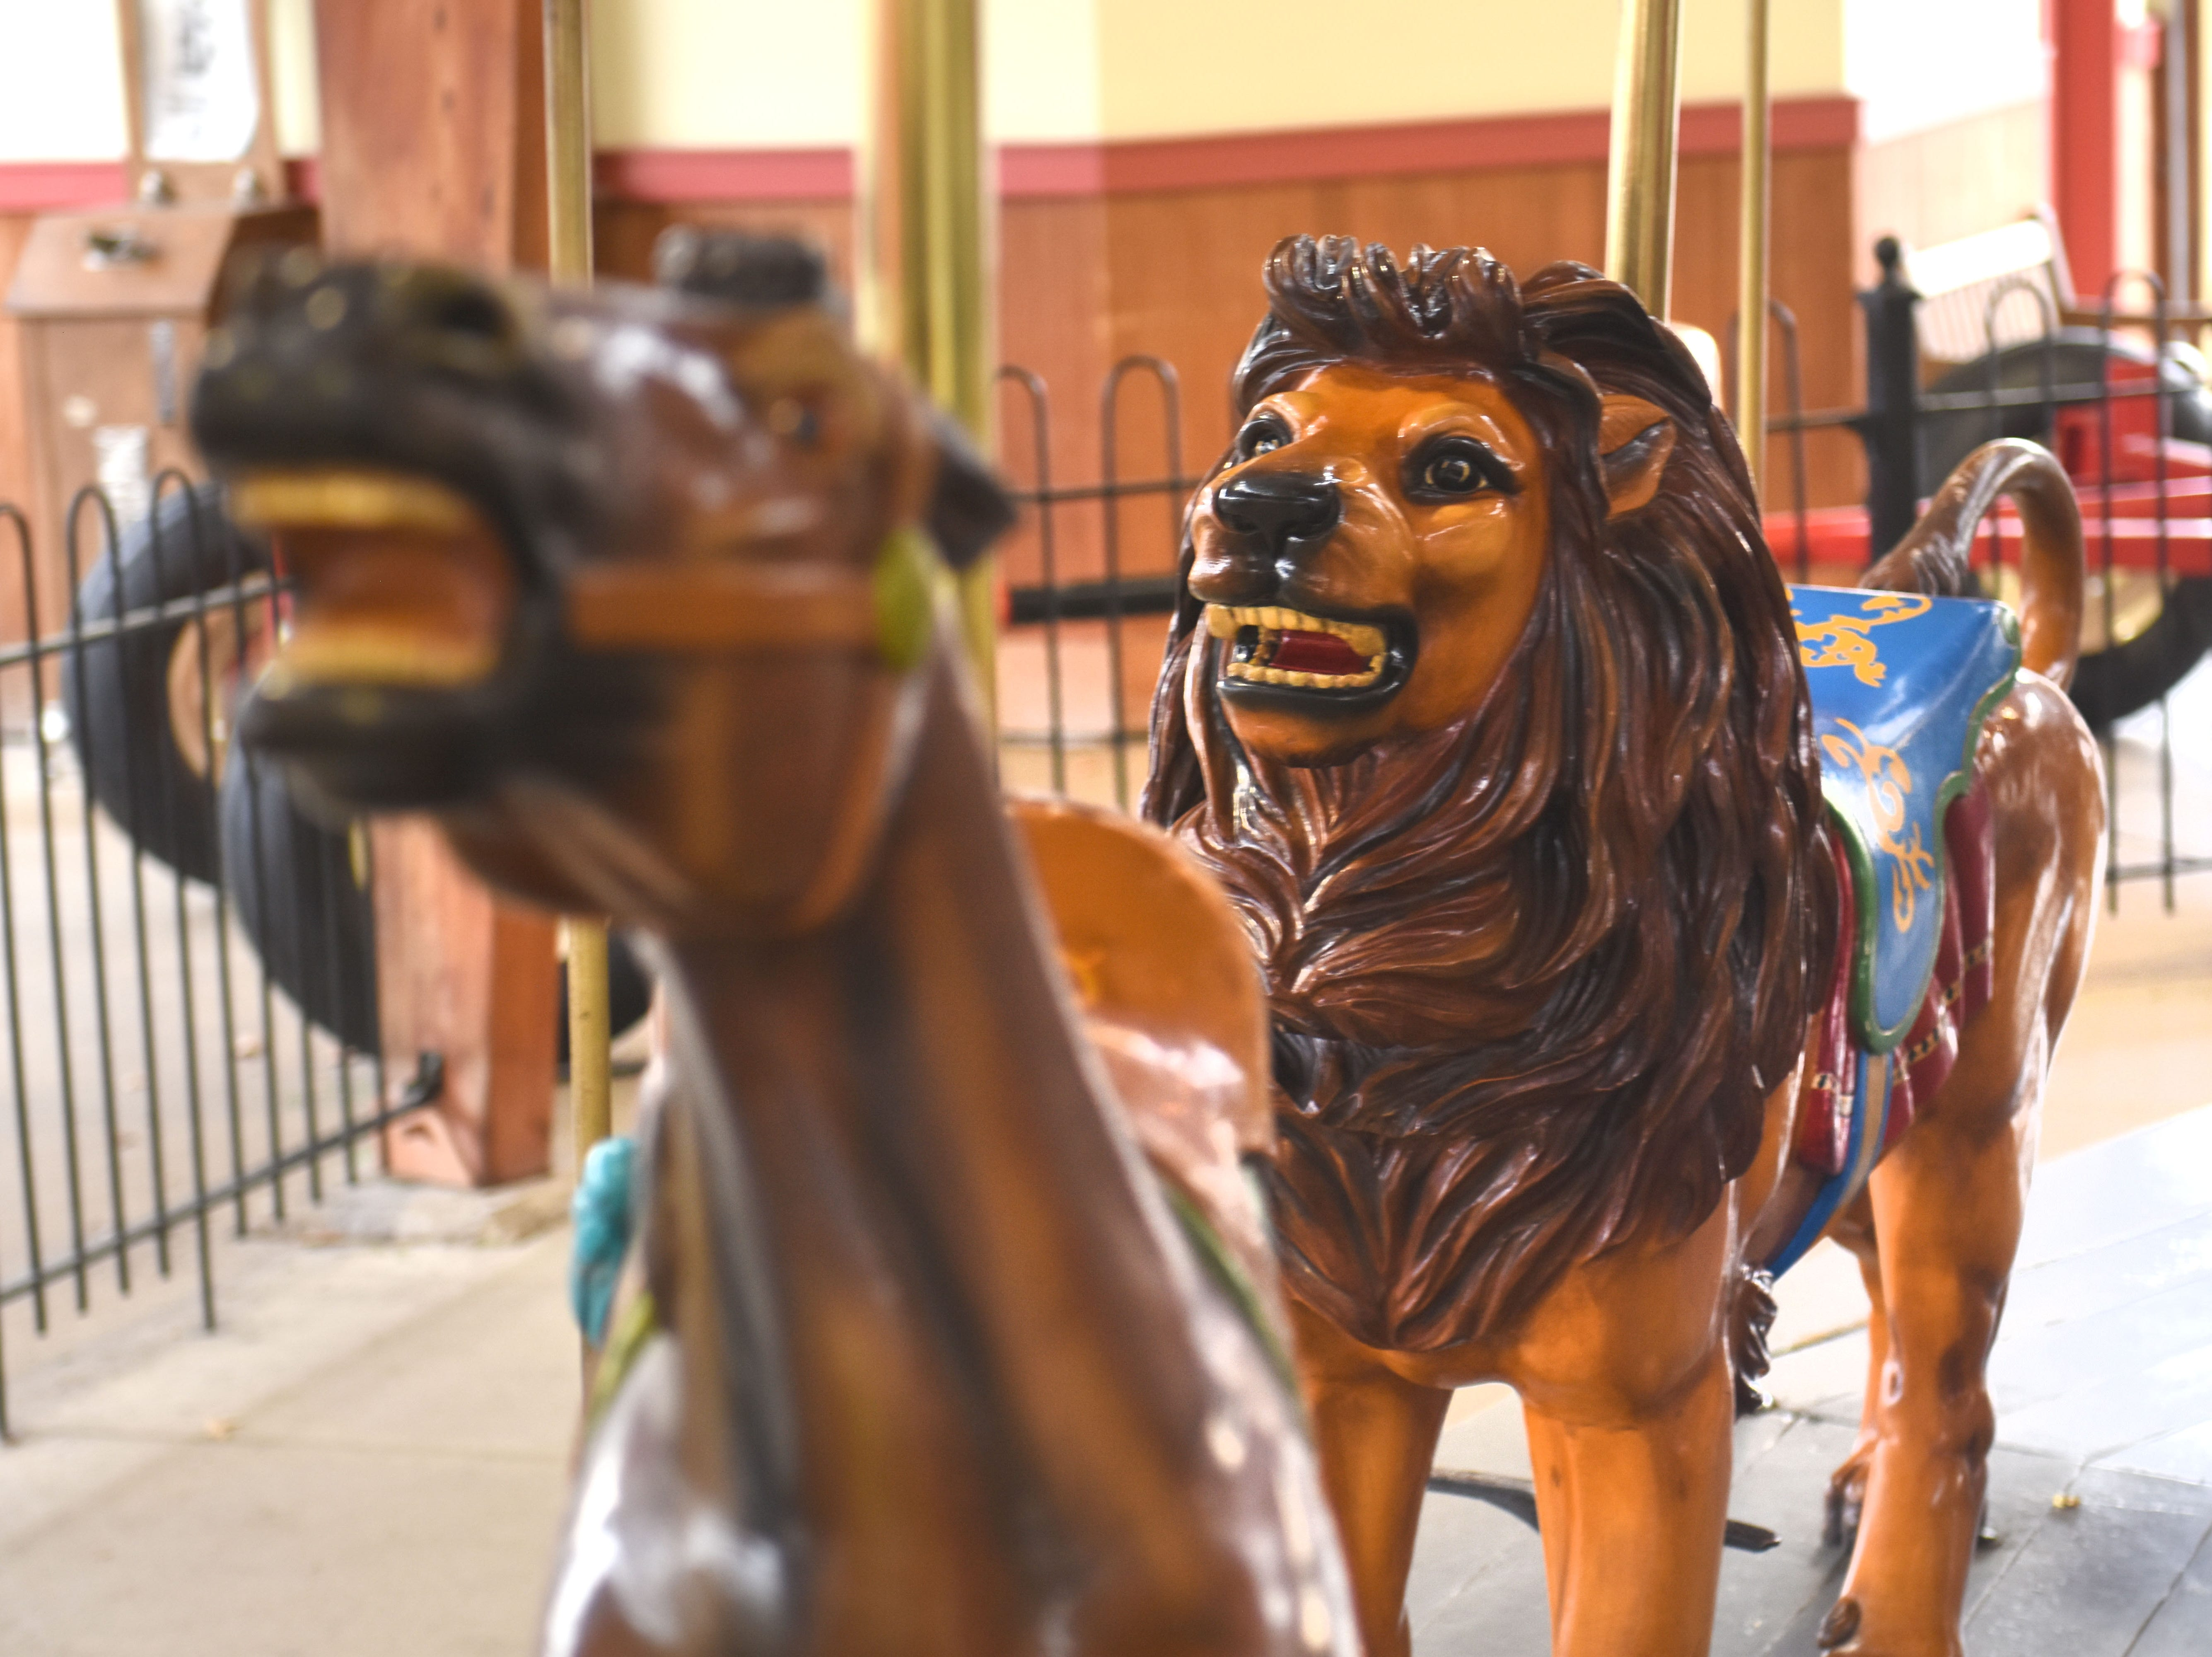 The grand lion seems to be chasing fellow carousel figures at Greenfield Village in Dearborn